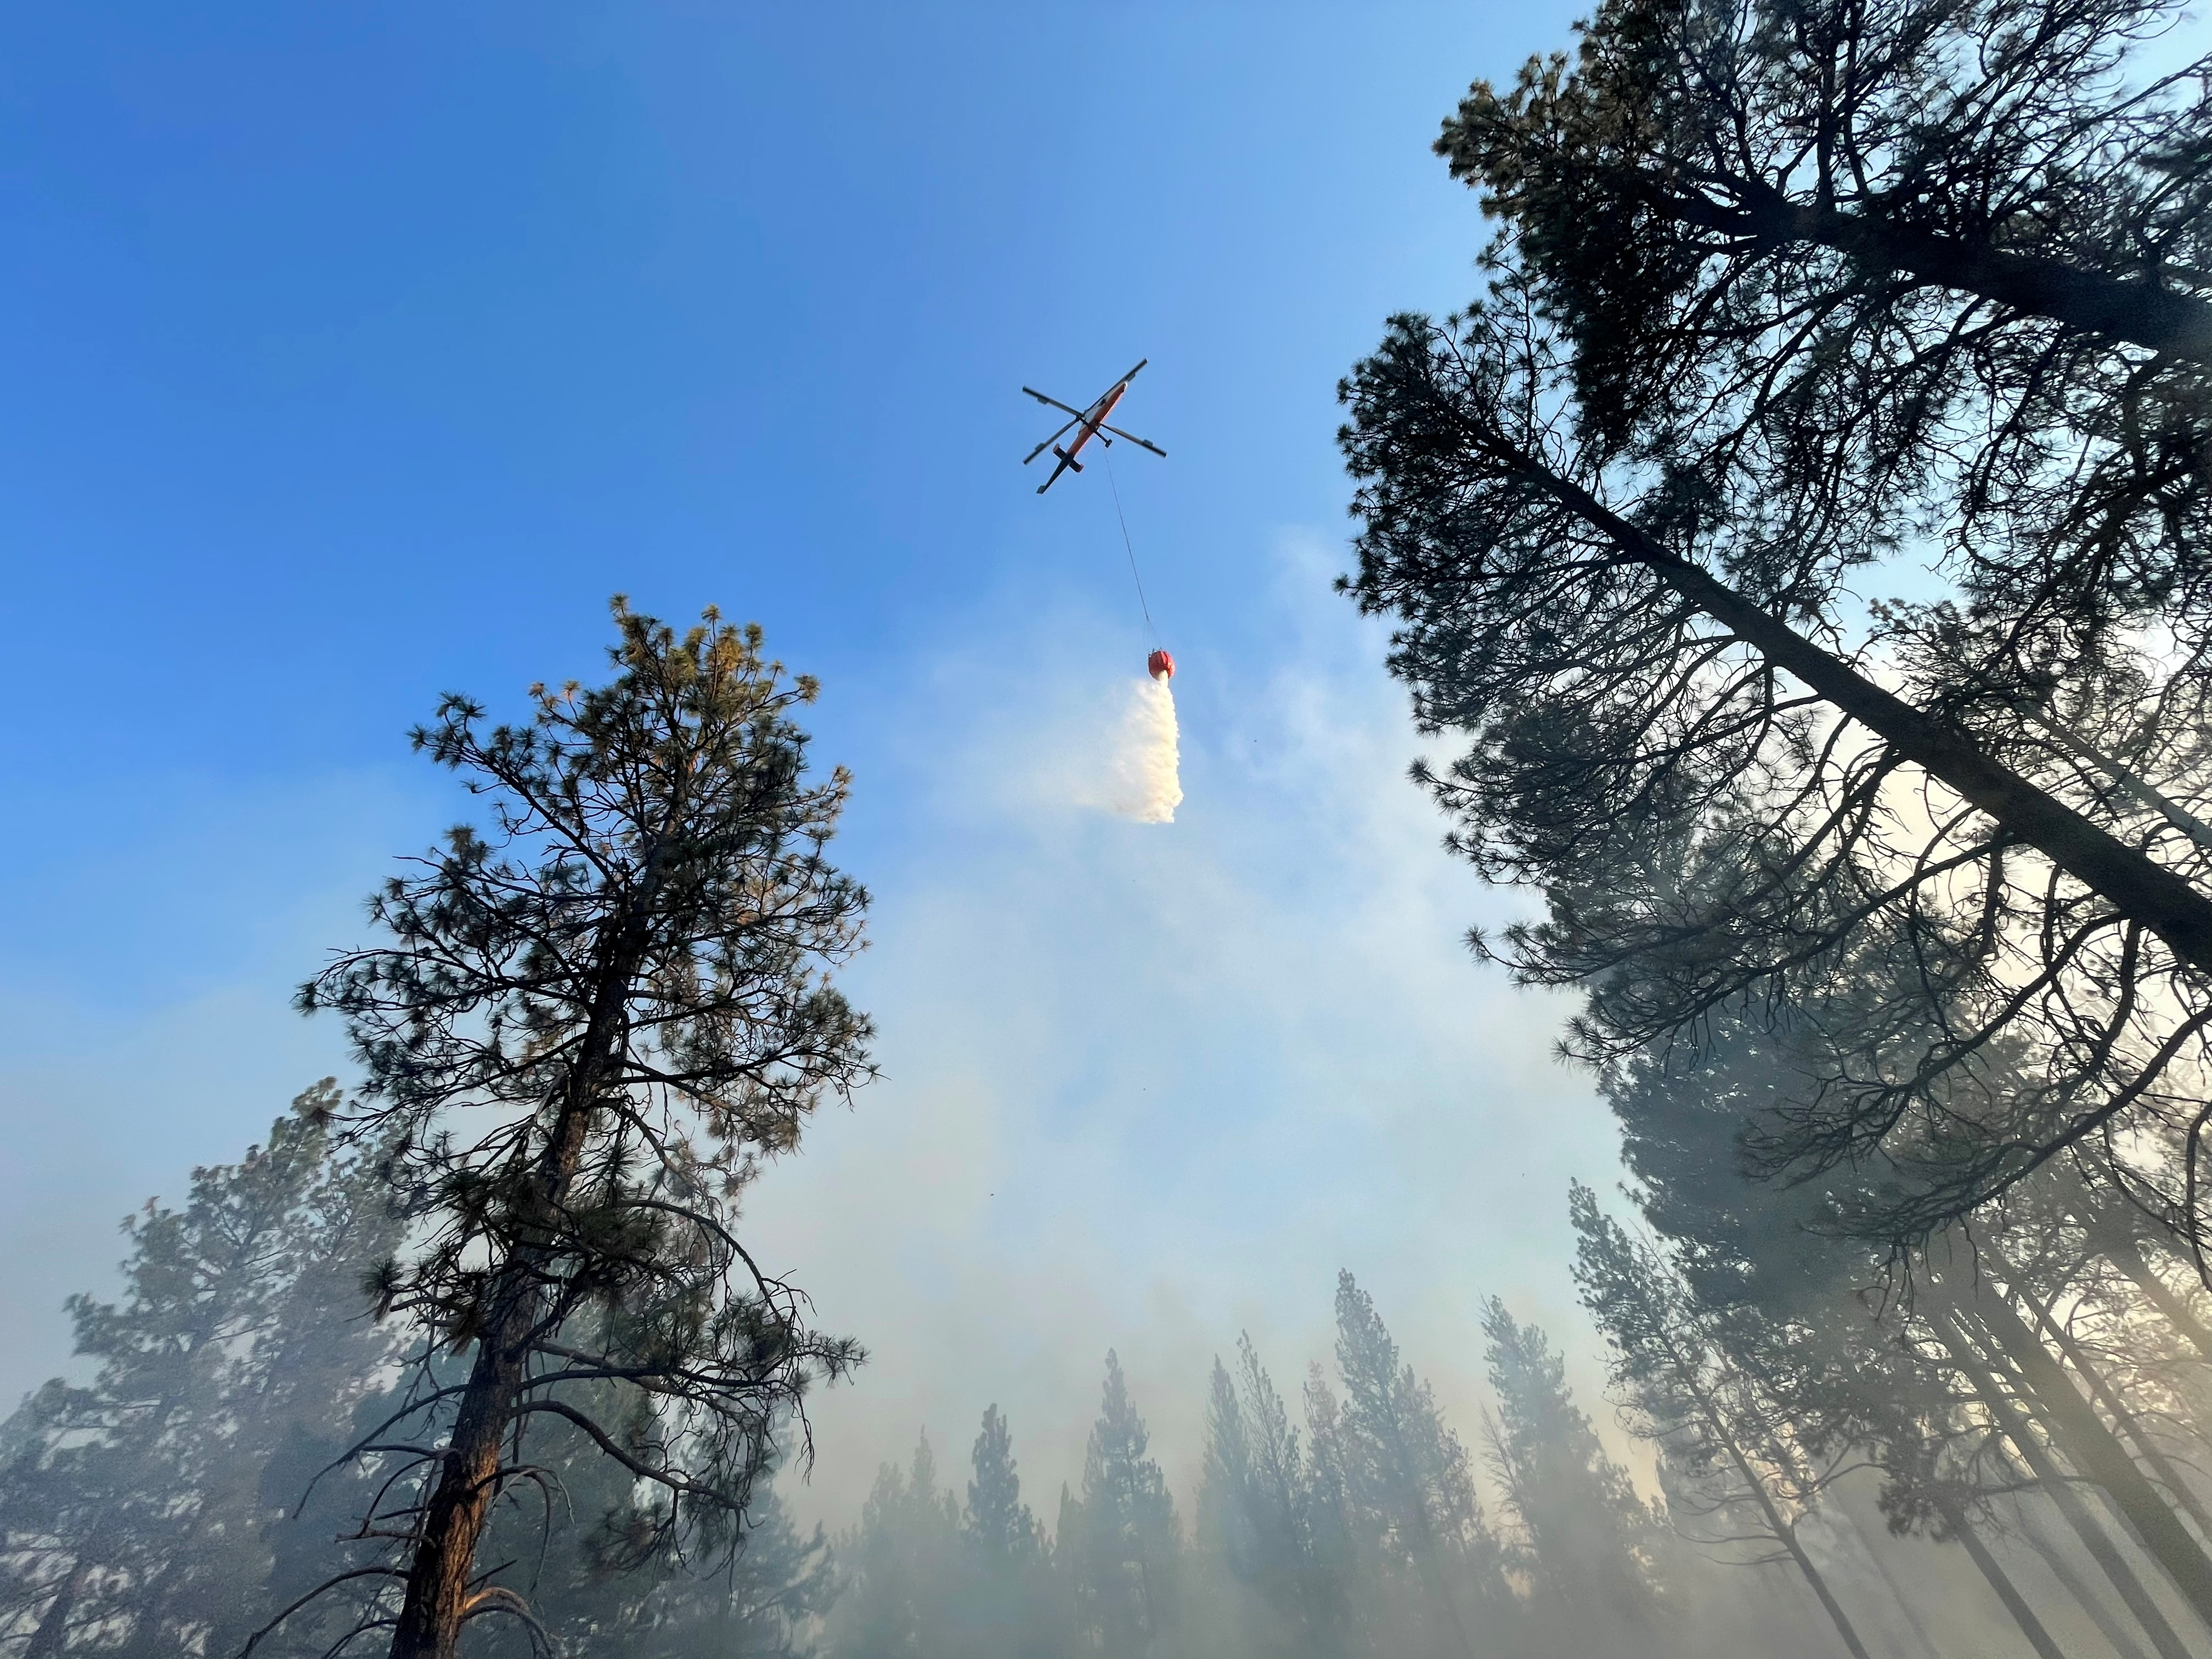 An aircraft flies over the Bootleg Fire as it rages in Klamath and Lake Counties, in Oregon, U.S., July 14, 2021. Picture taken July 14, 2021. OSFM Green Incident Management Team via REUTERS